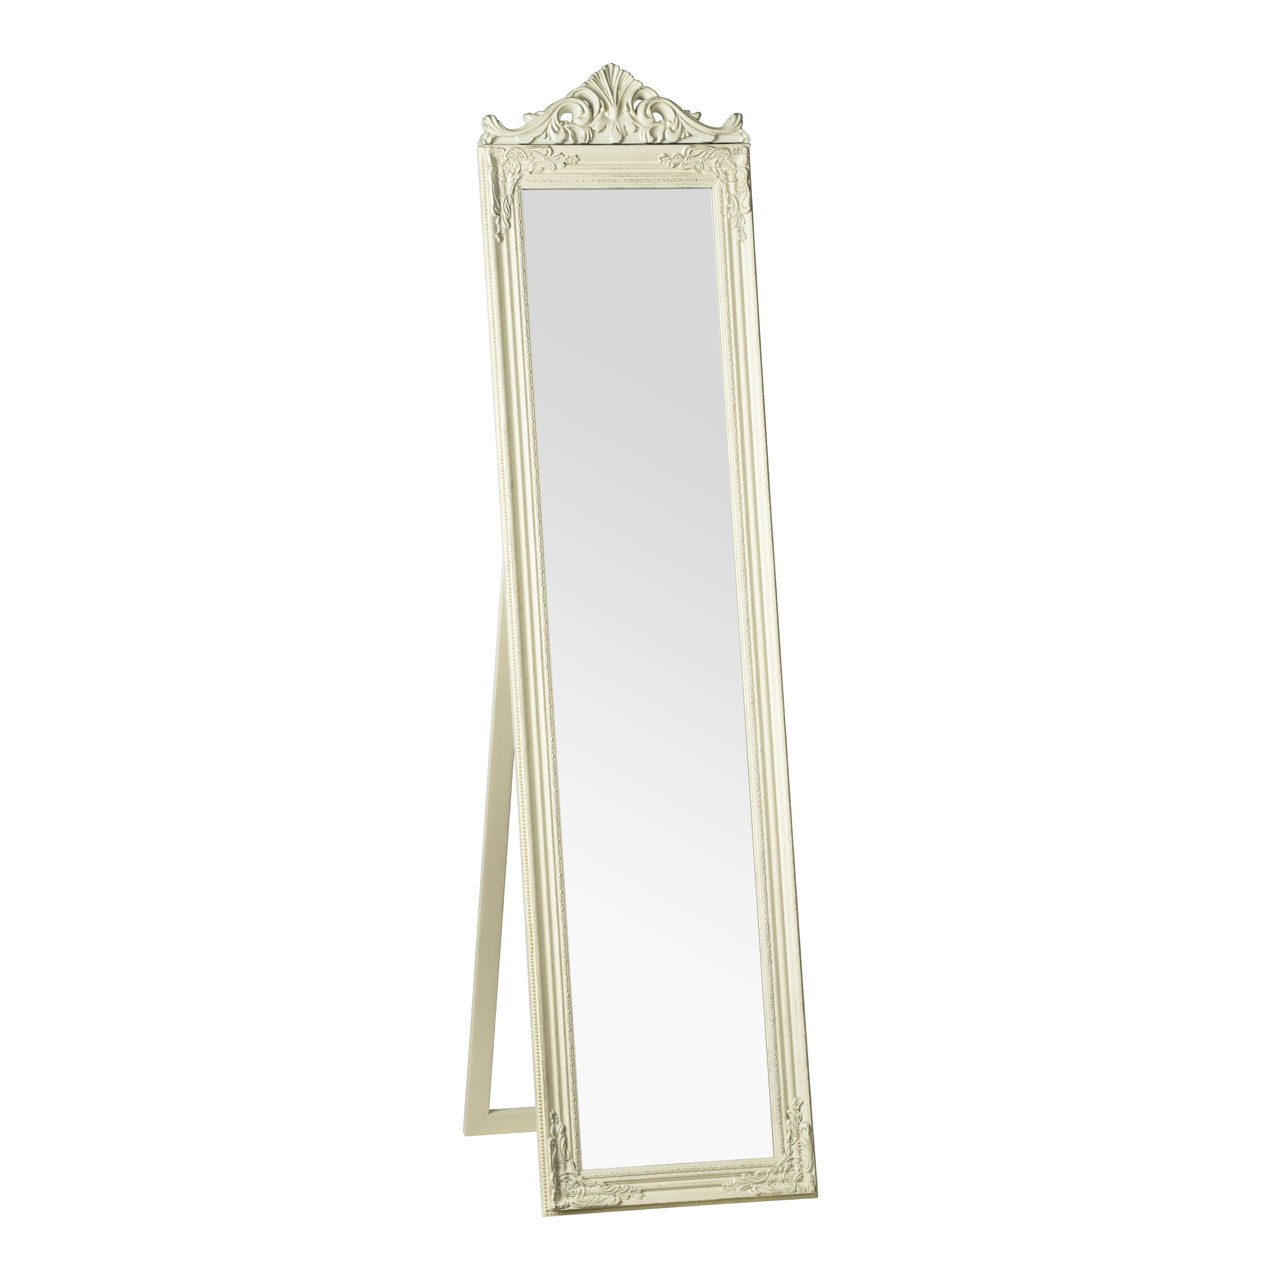 Prime Furnishing Boudoir Floor Standing Mirror - Cream/Gold